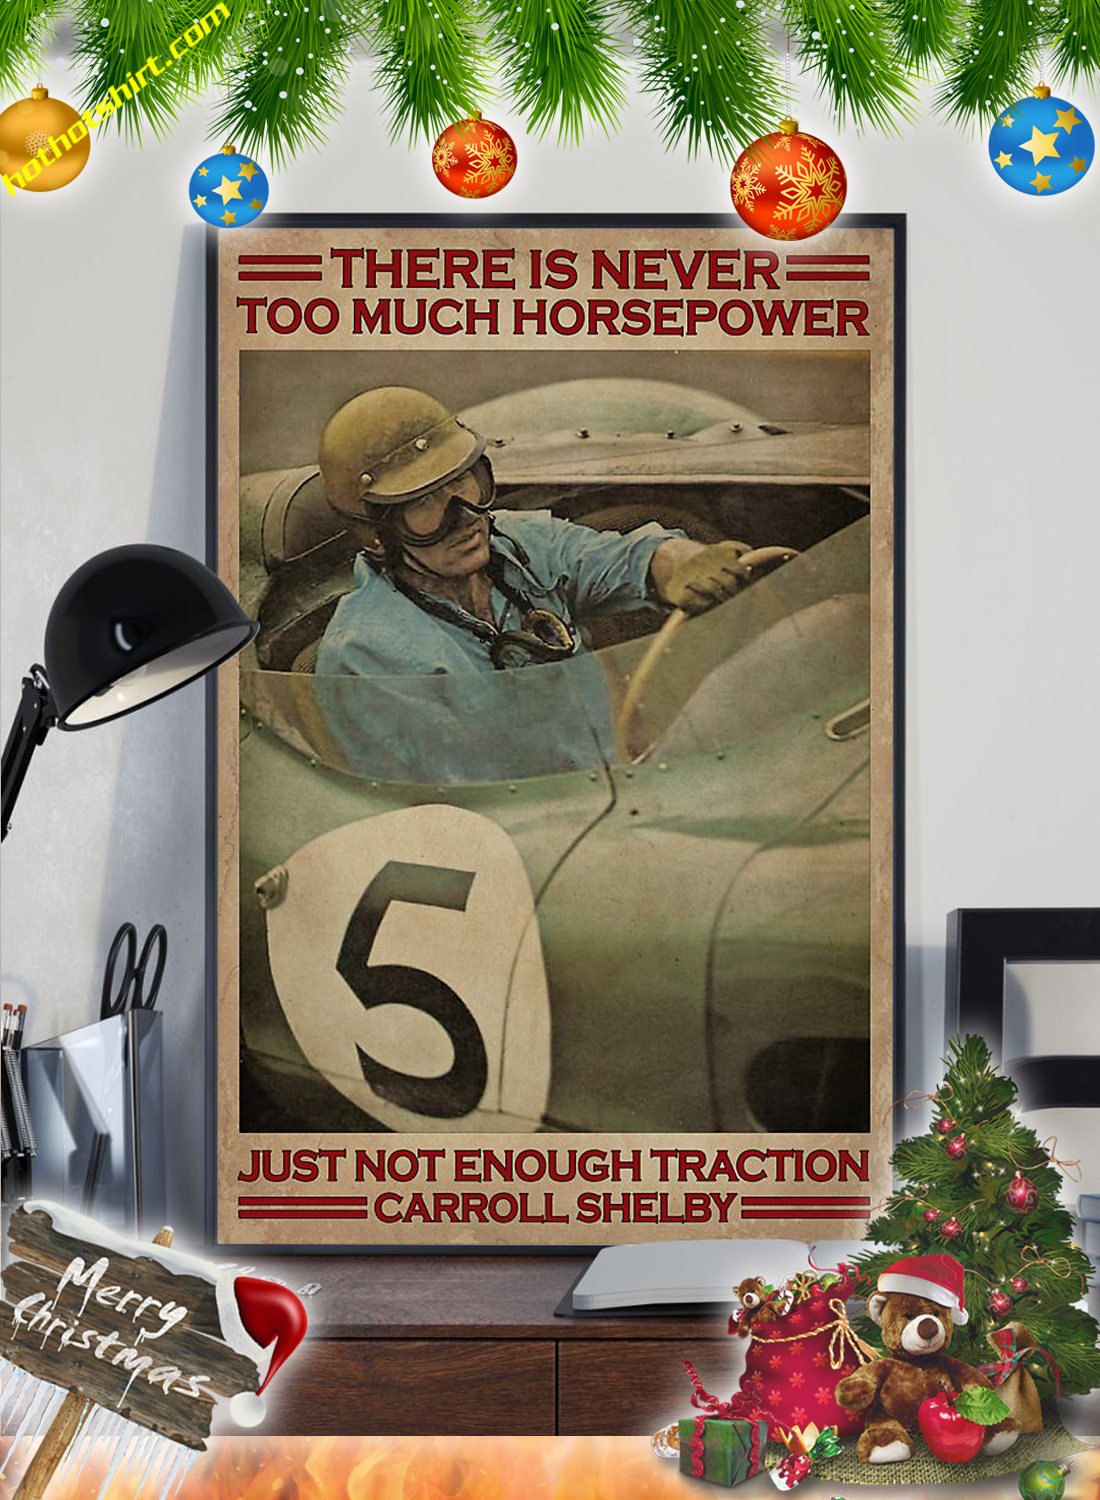 Racing There is never too much horsepower poster 2